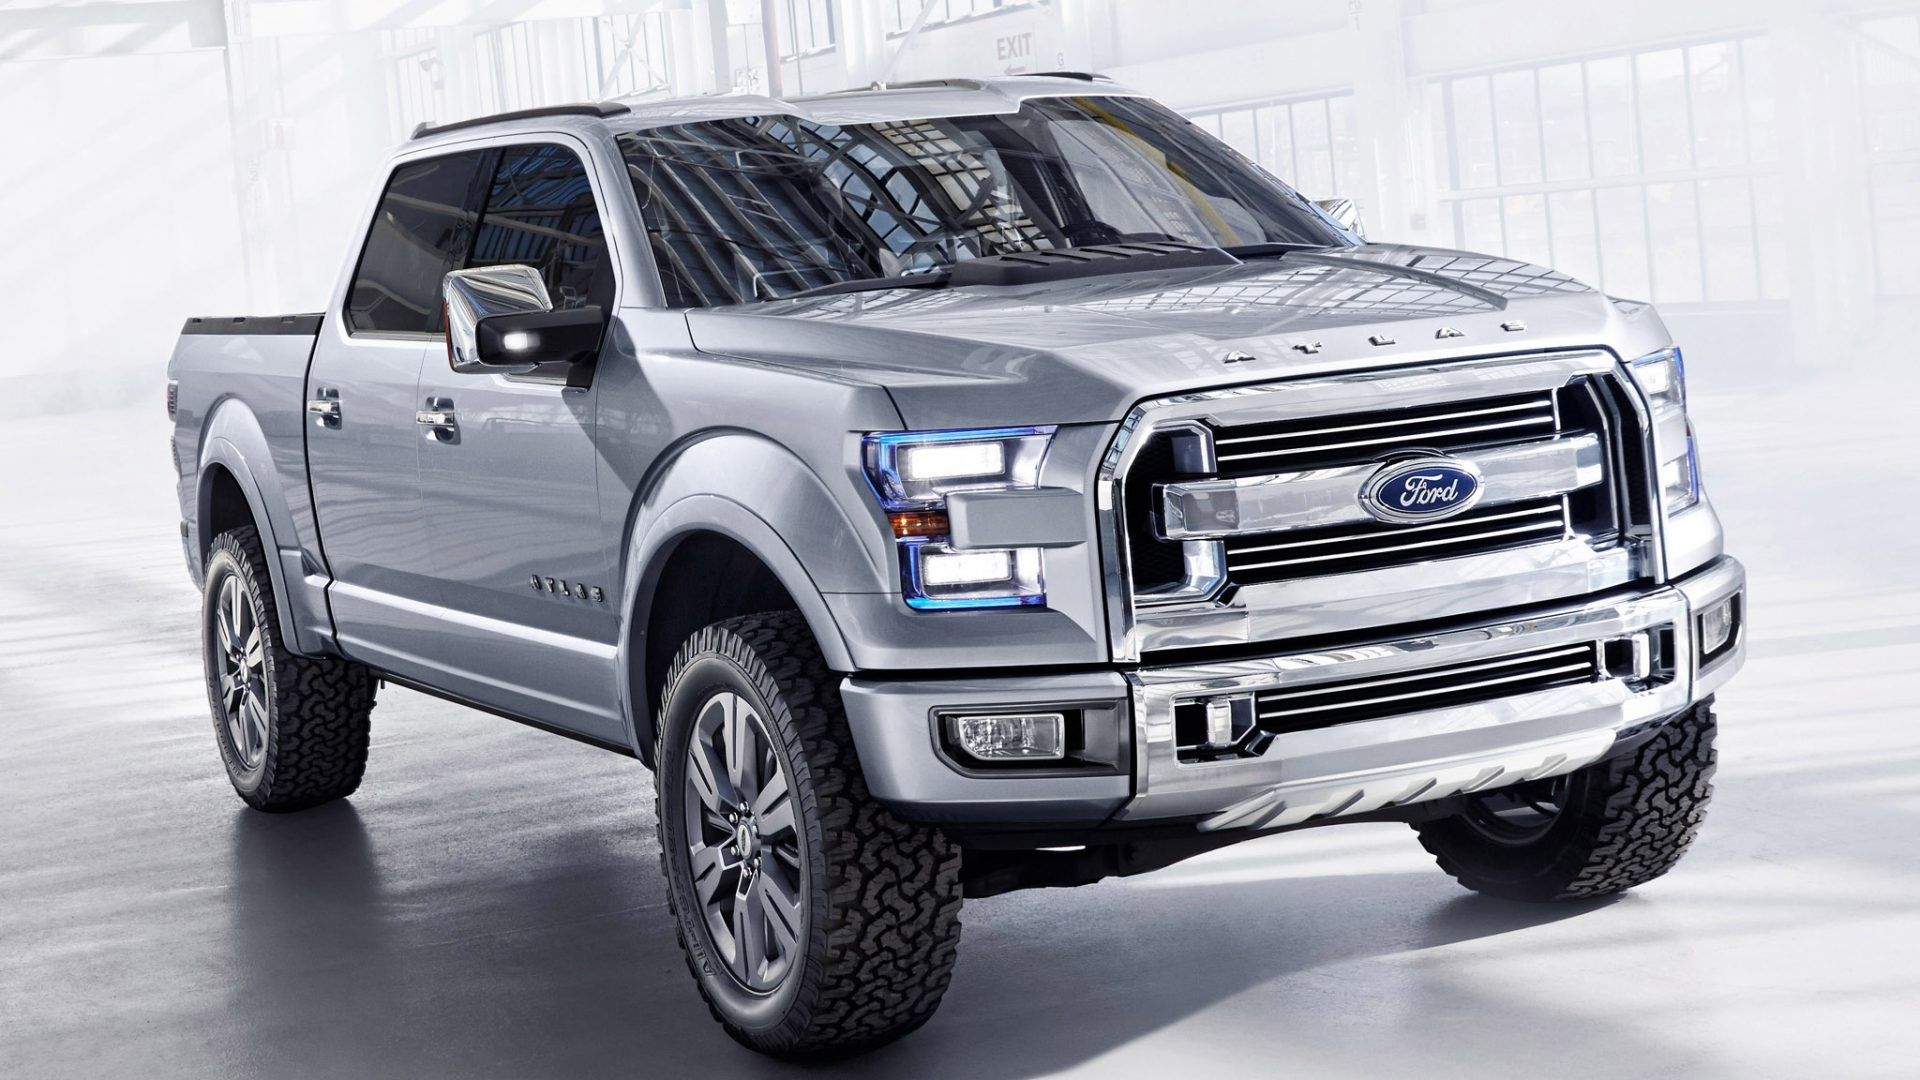 ford truck wallpaper android 1920x1080 & ford truck wallpaper android 1920x1080 | ololoshka | Pinterest ... markmcfarlin.com